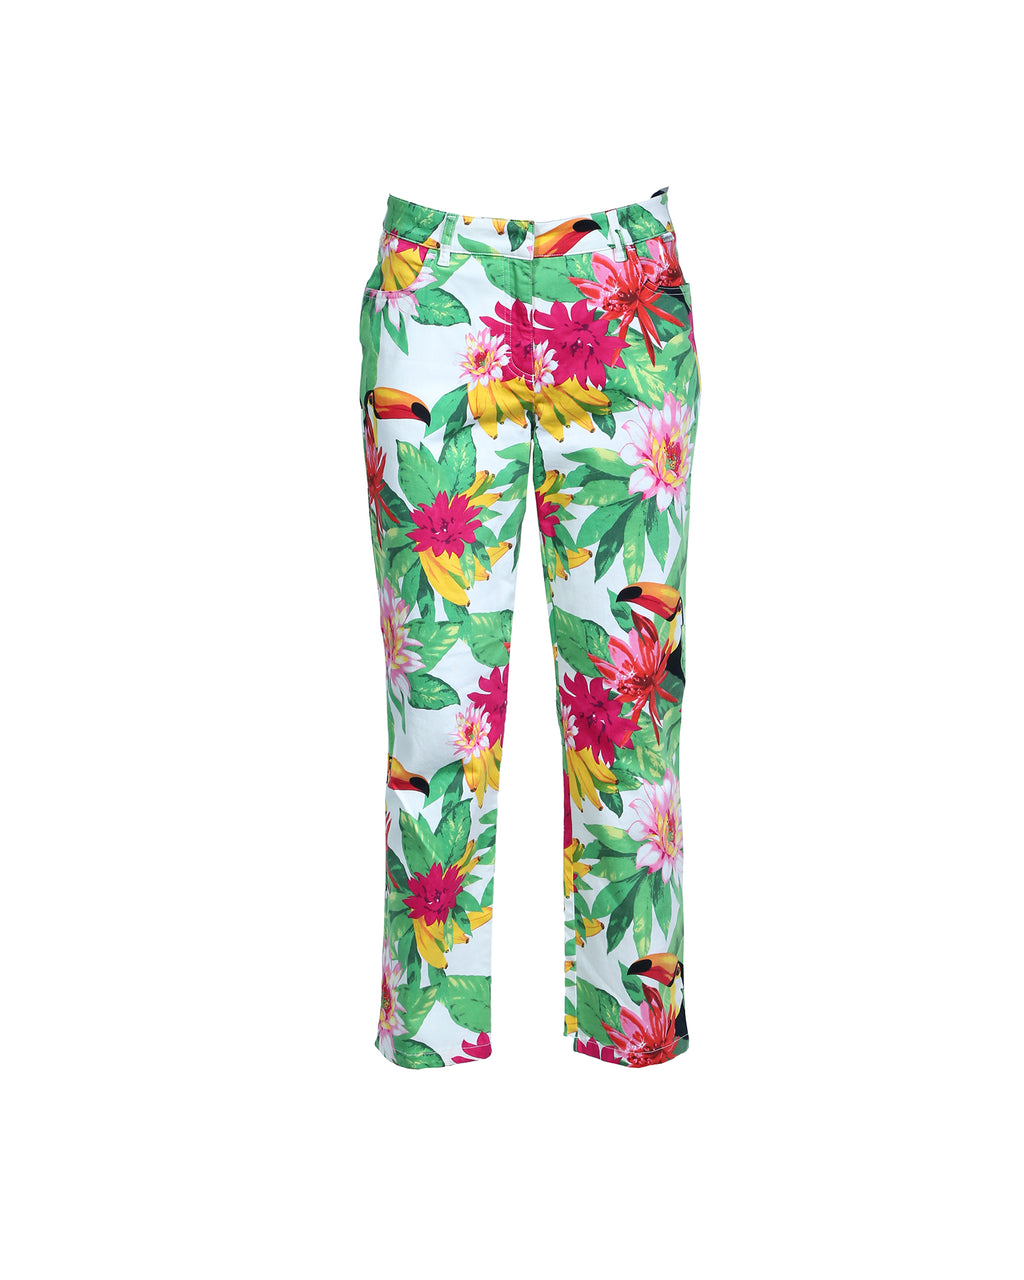 Escada Sport Tropical Print Trousers Size 38 (EU)